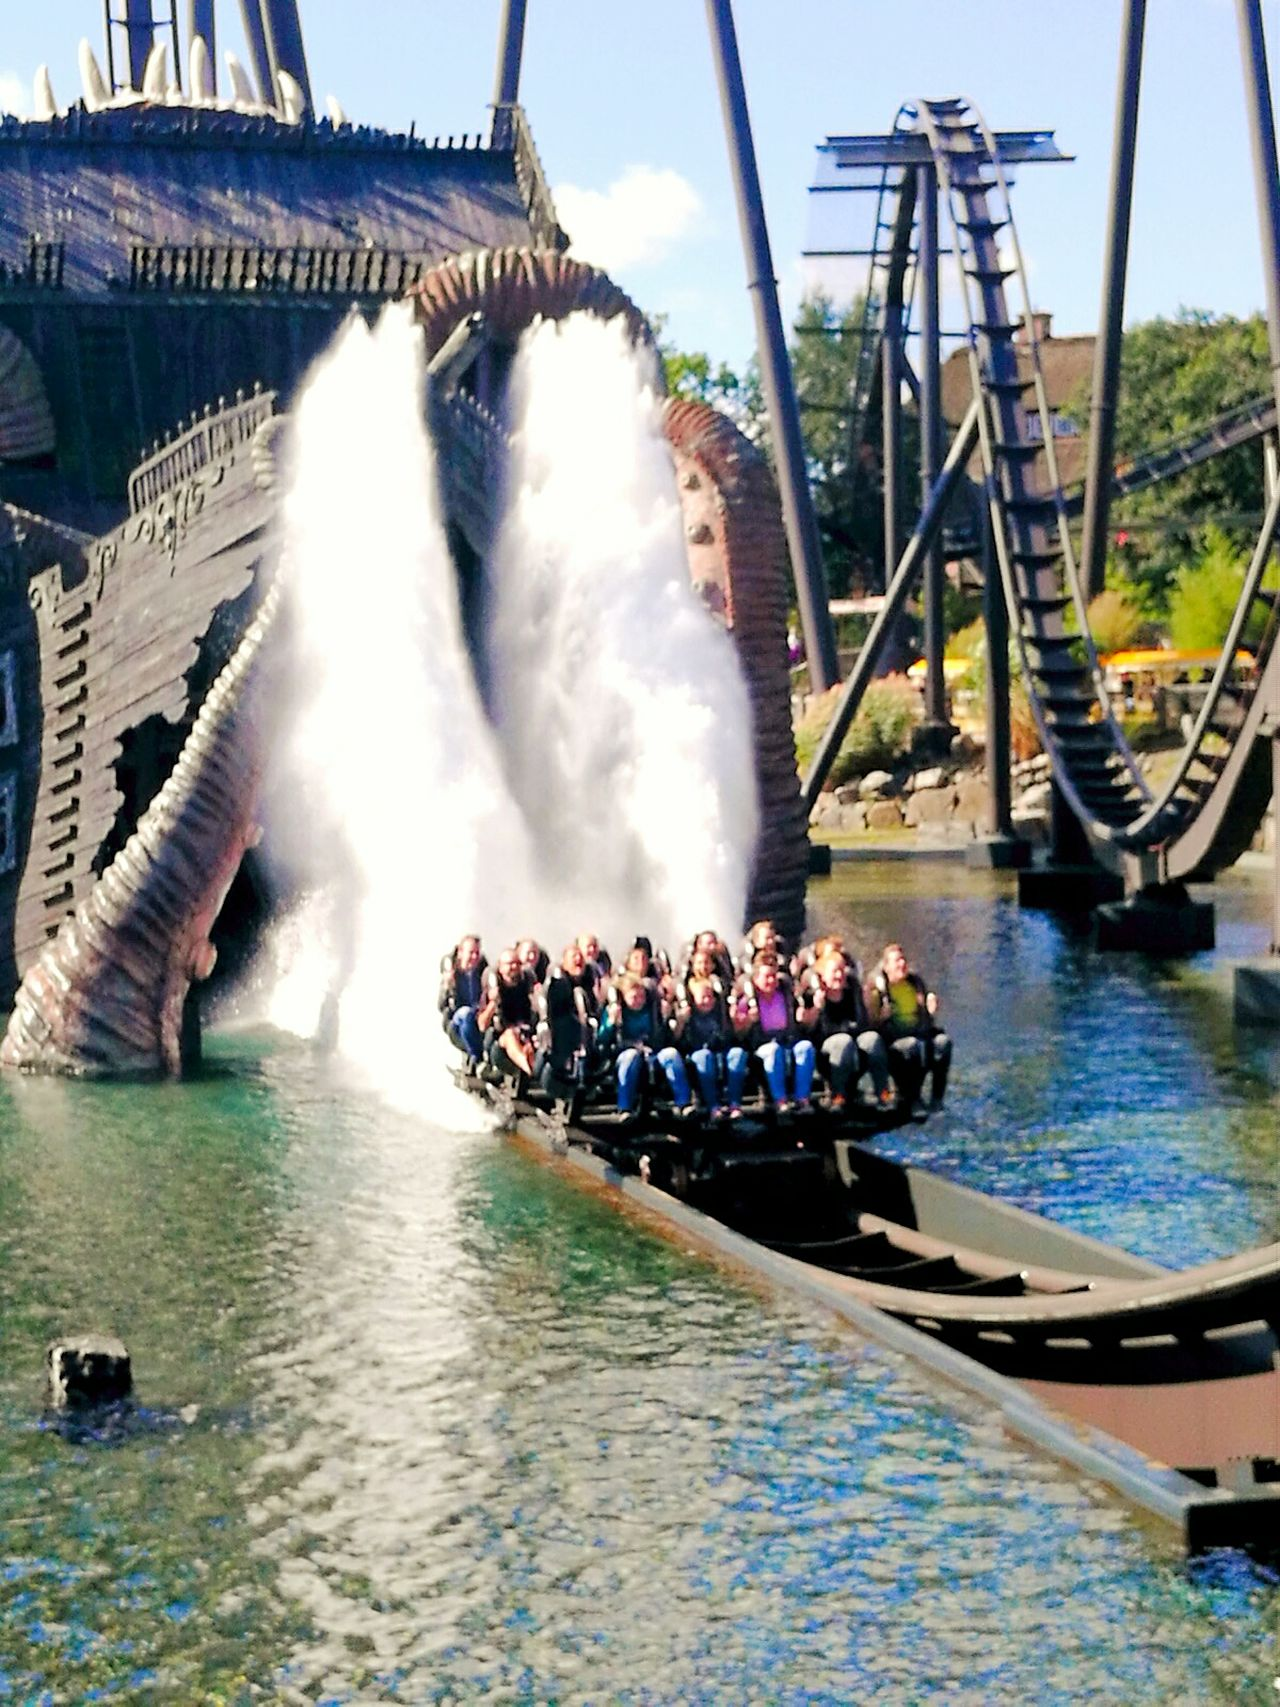 Heidepark Heidepark Soltau Heidepark Soltau <3 Heideparksoltau Achterbahn Achterbahn😊 Roller Coaster Rollercoaster